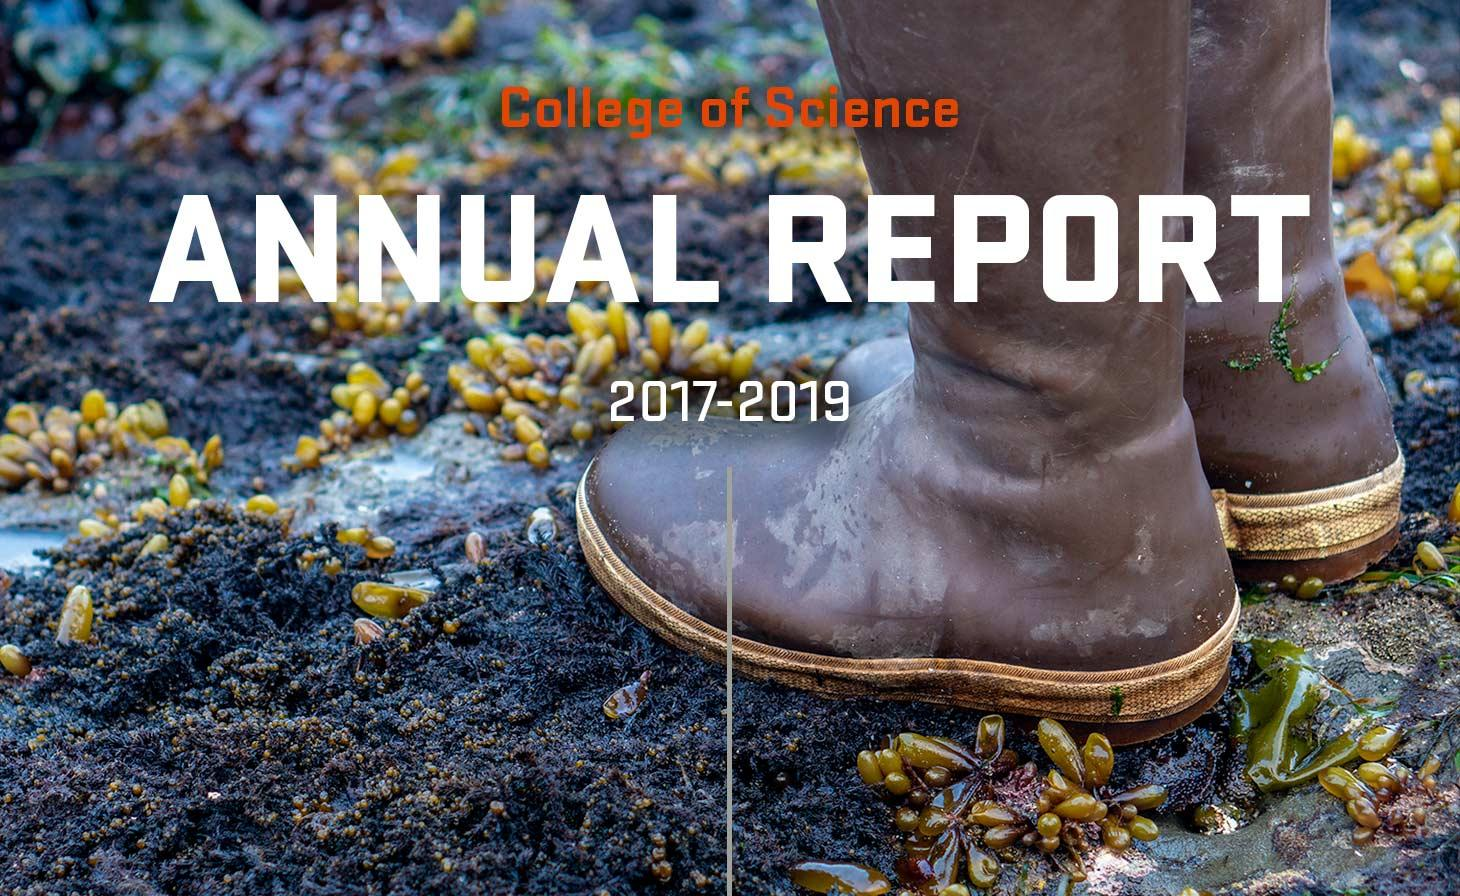 Annual Report 2017-2019 cover graphic of title above image of boots on ocean shore